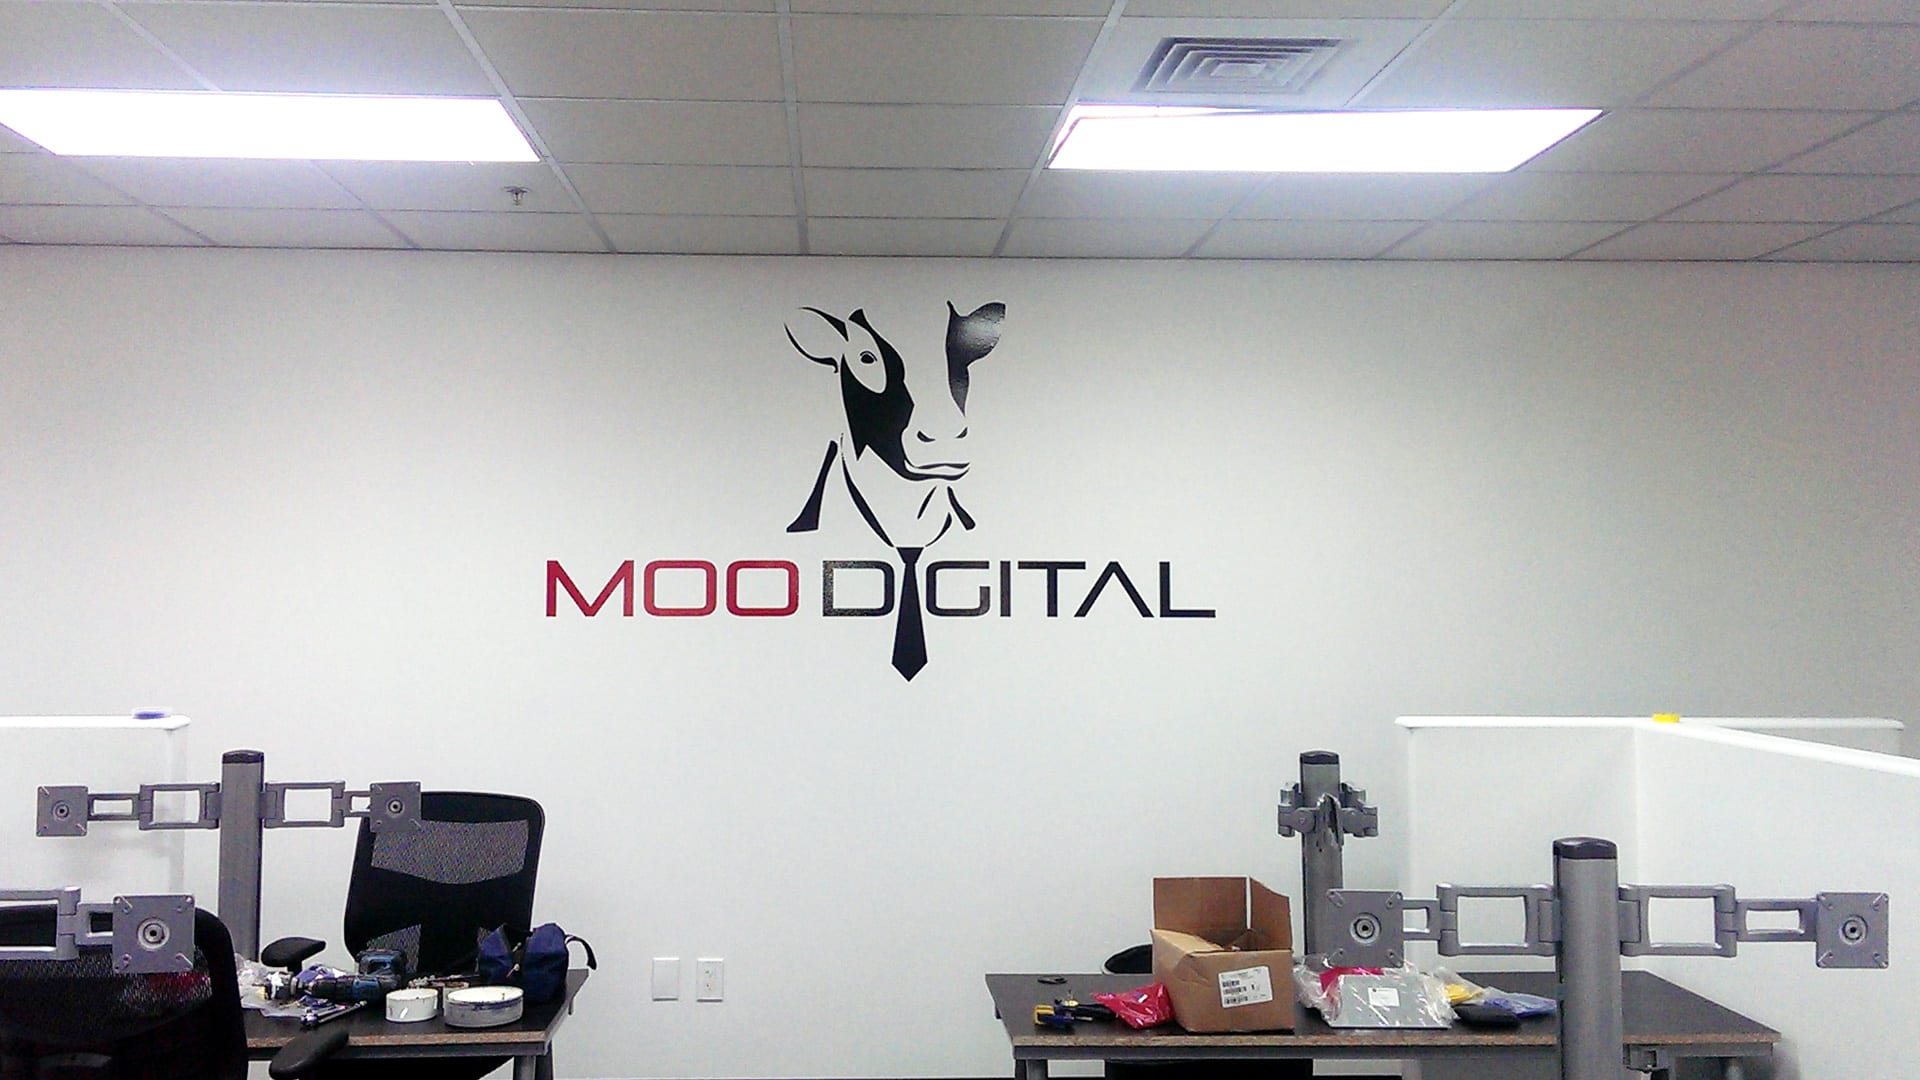 Moo Digital - Vinyl Lettering - Interior wall